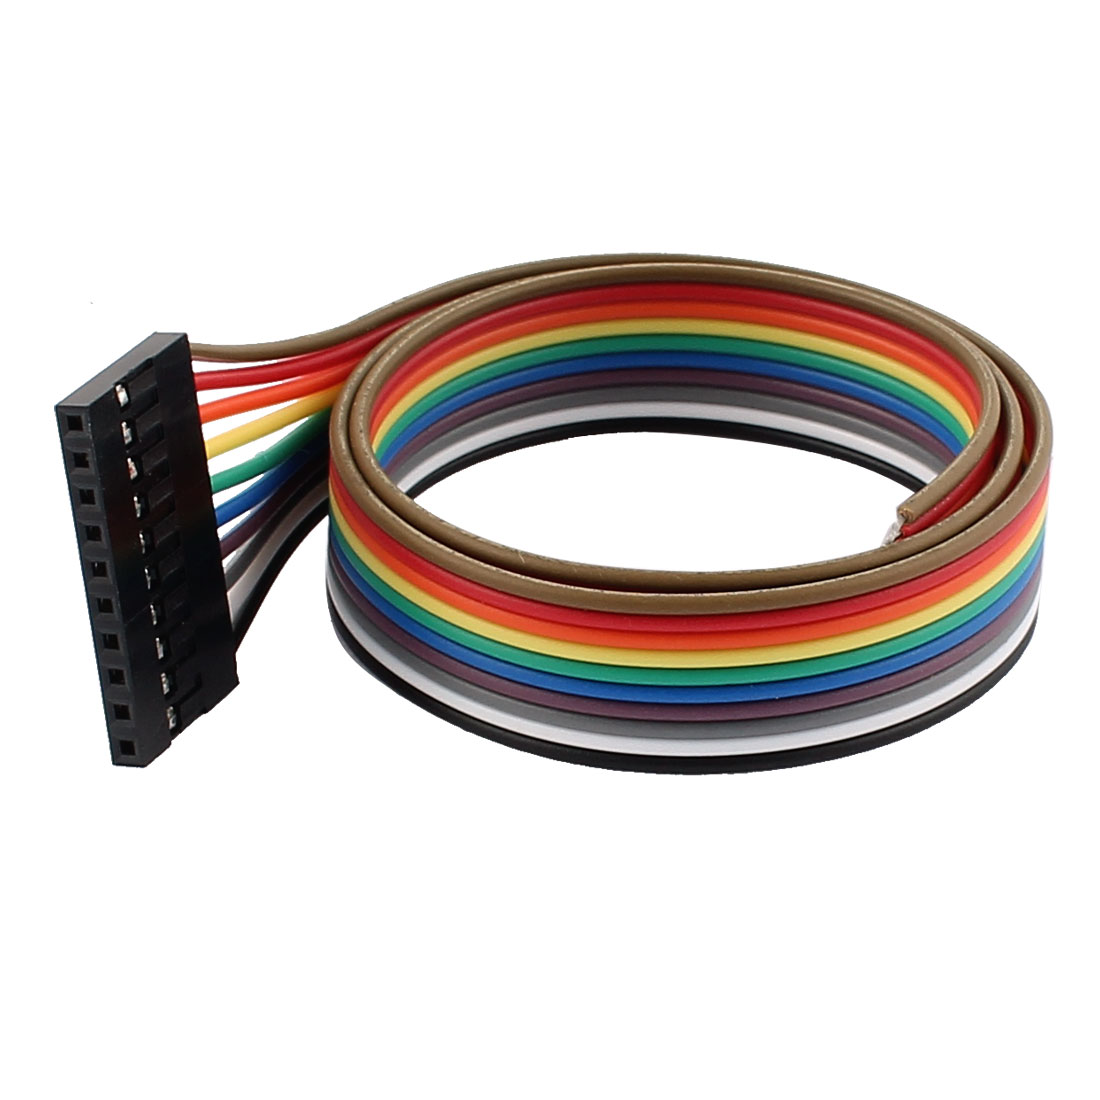 Female 10P Jumper Wire Ribbon Cable Pi Pic Breadboard DIY 40cm Long